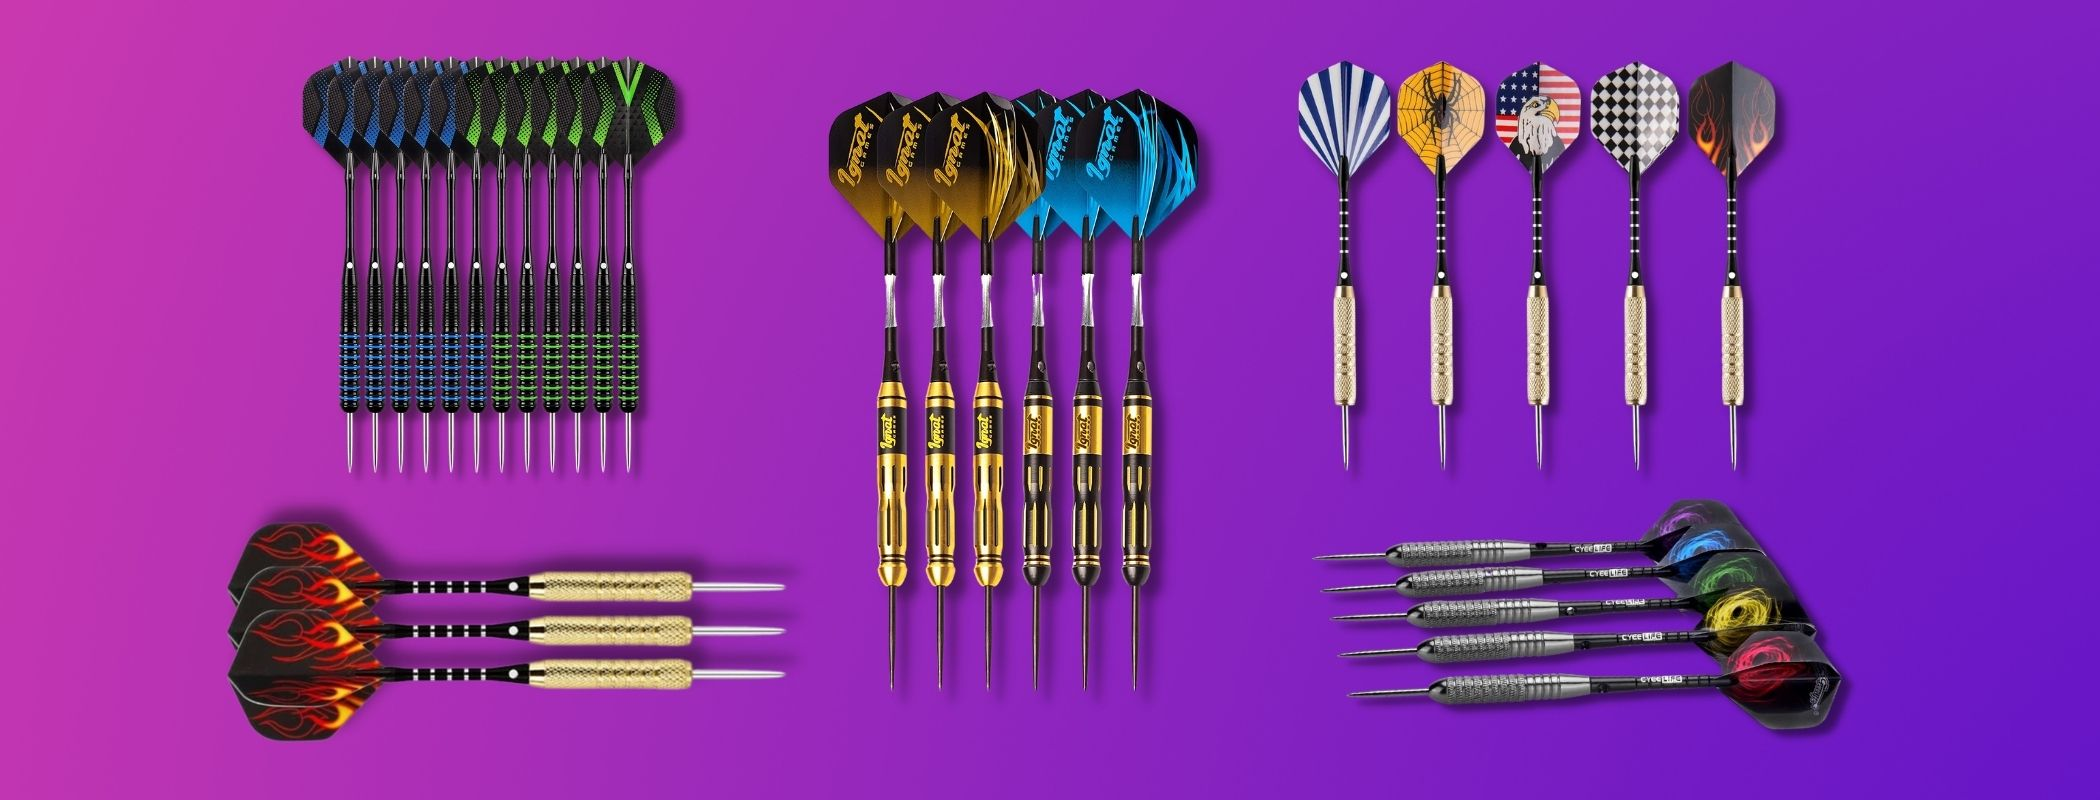 Best Darts for Beginners 2021 (Buyer's Guide & Reviews)